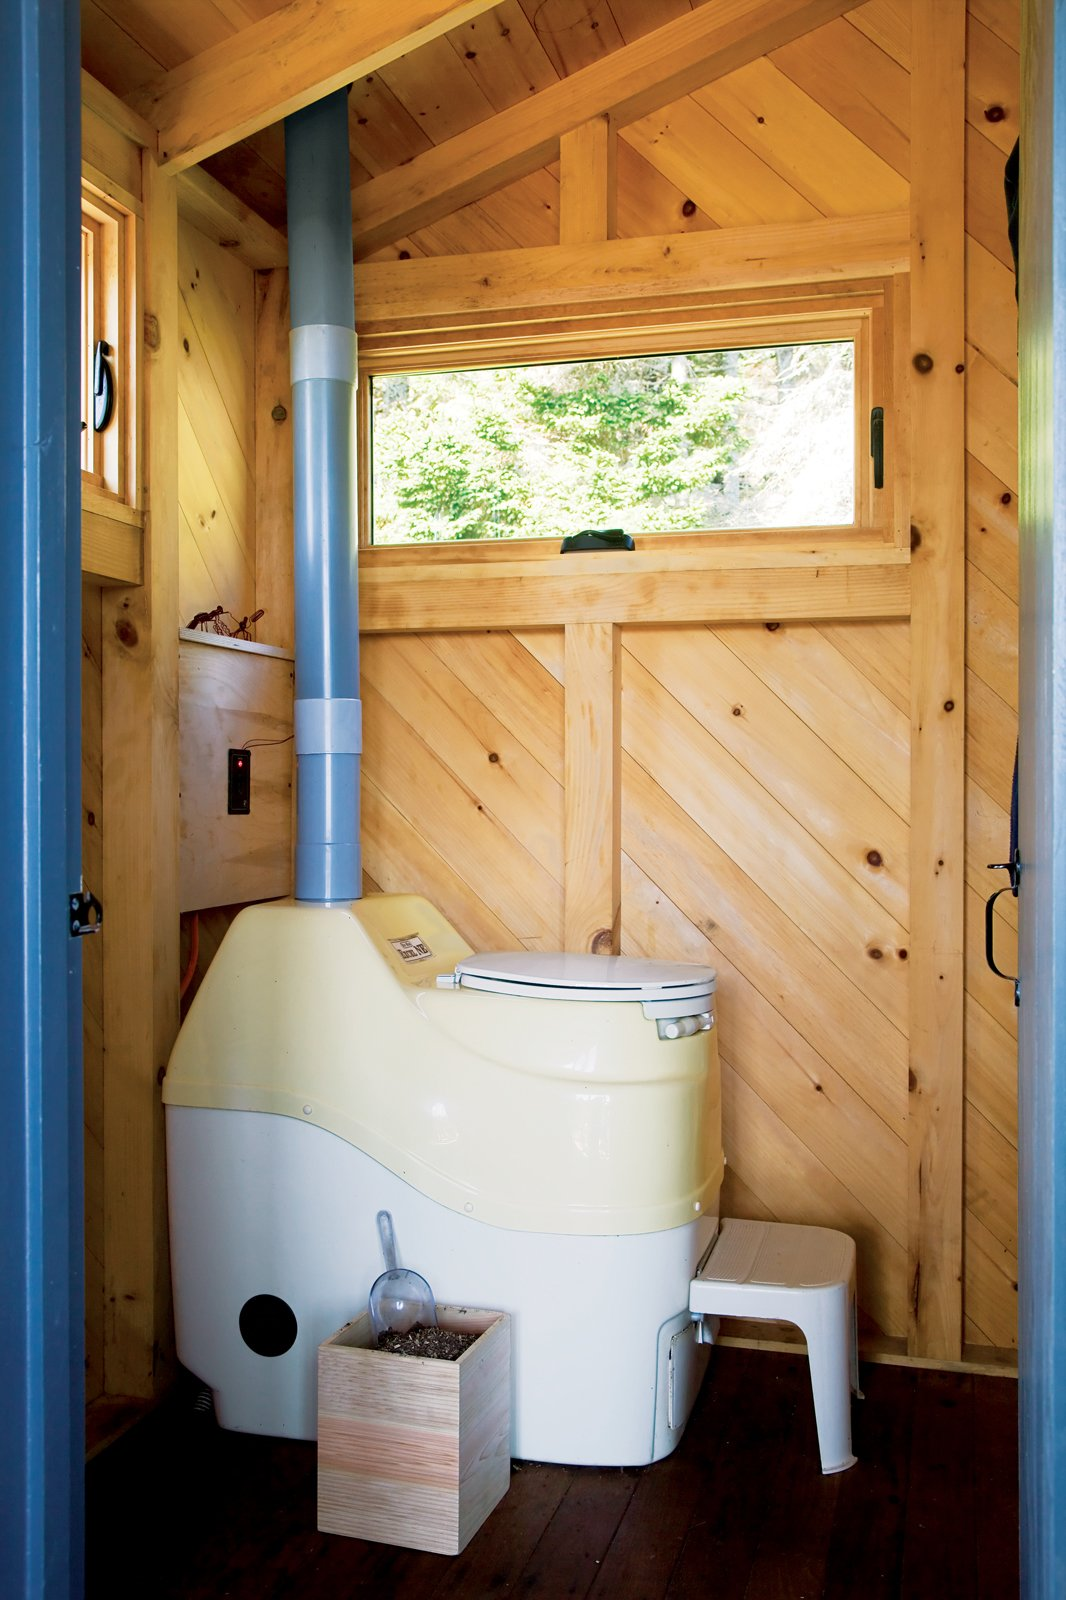 Since septic systems are impossibilities on Criehaven, the Porters chose a Sun-Mar self-contained composting toilet as the ideal alternative. Tagged: Bath Room and One Piece Toilet.  Photo 11 of 21 in A Tiny Cabin is This Writer's Off the Grid Getaway